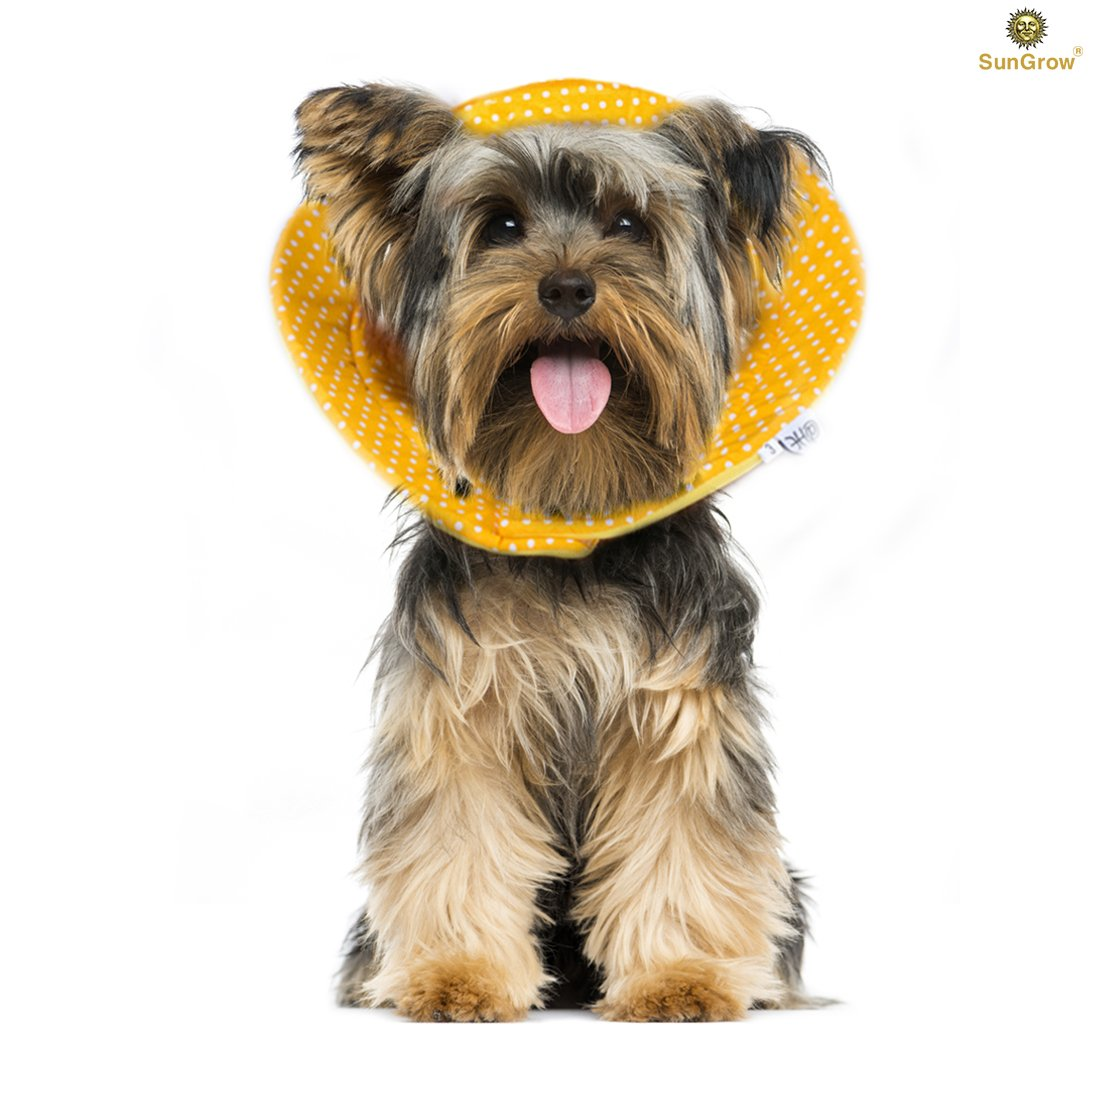 SunGrow Pet Cute Comfy Cone: Post Surgery & Stress-Free Recovery Collar : Durable, Scratch, Bite, & Water Resistant: With Adjustable Velcro Enclosures for Dogs & Cats